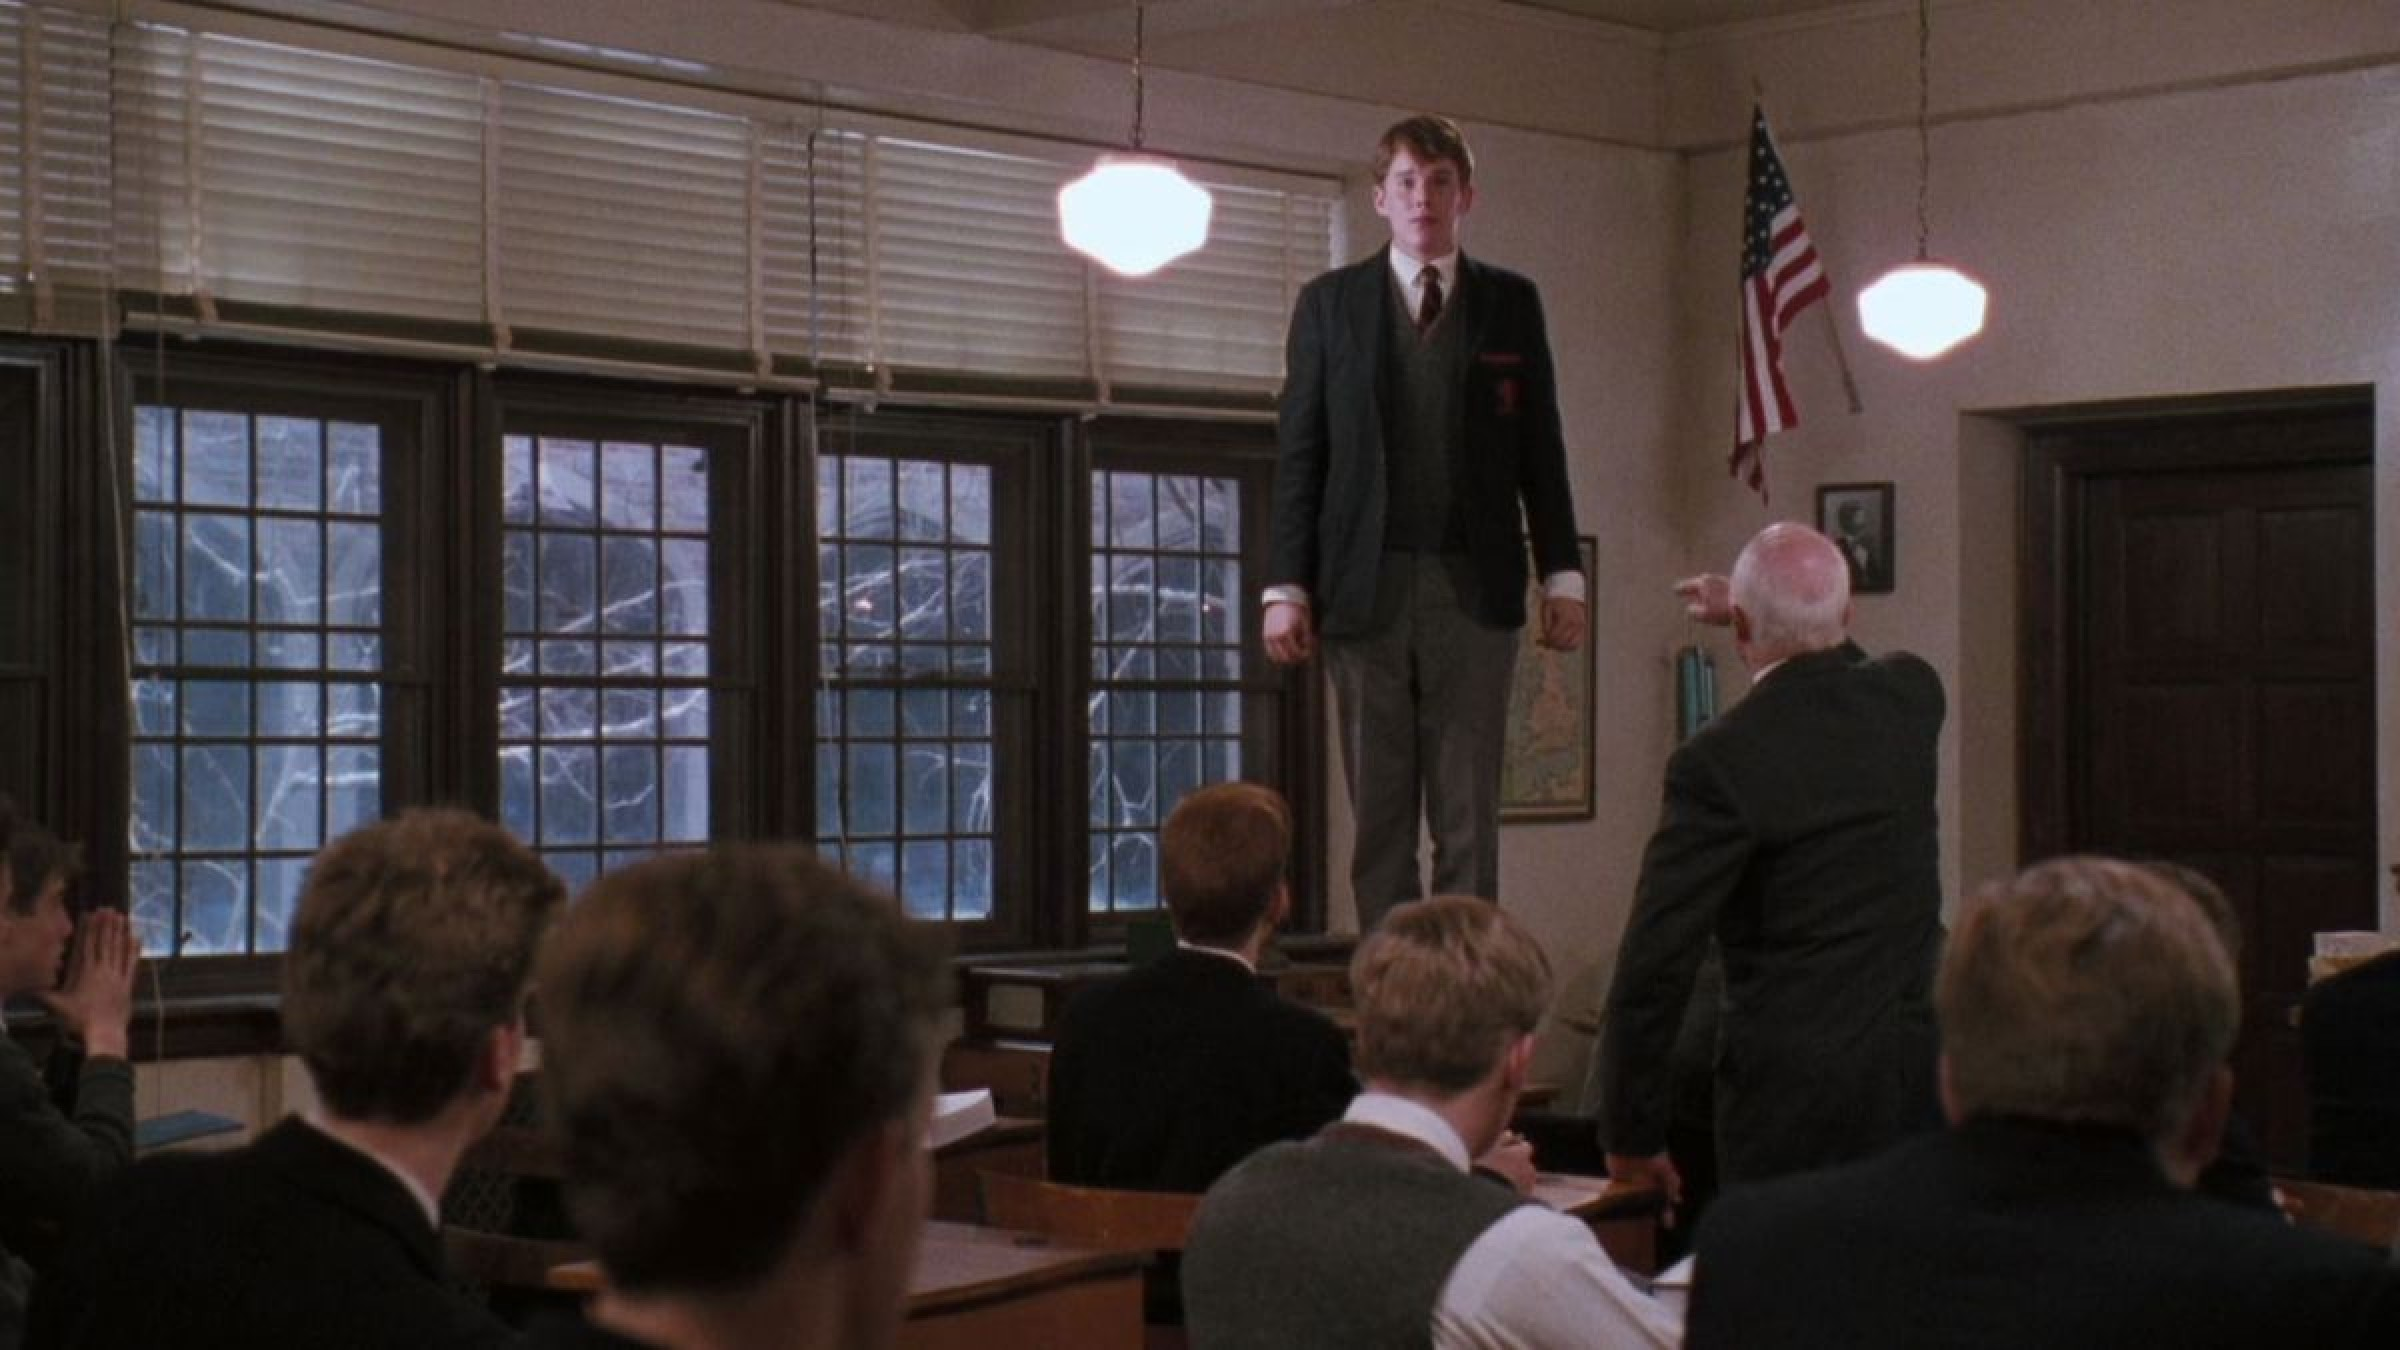 an analysis of the characters in the movie dead poets society by peter weir The movie dead poets society 5 pages (1250 words) nobody downloaded yetpeter weir dead poet's society great fly away peter analysis.